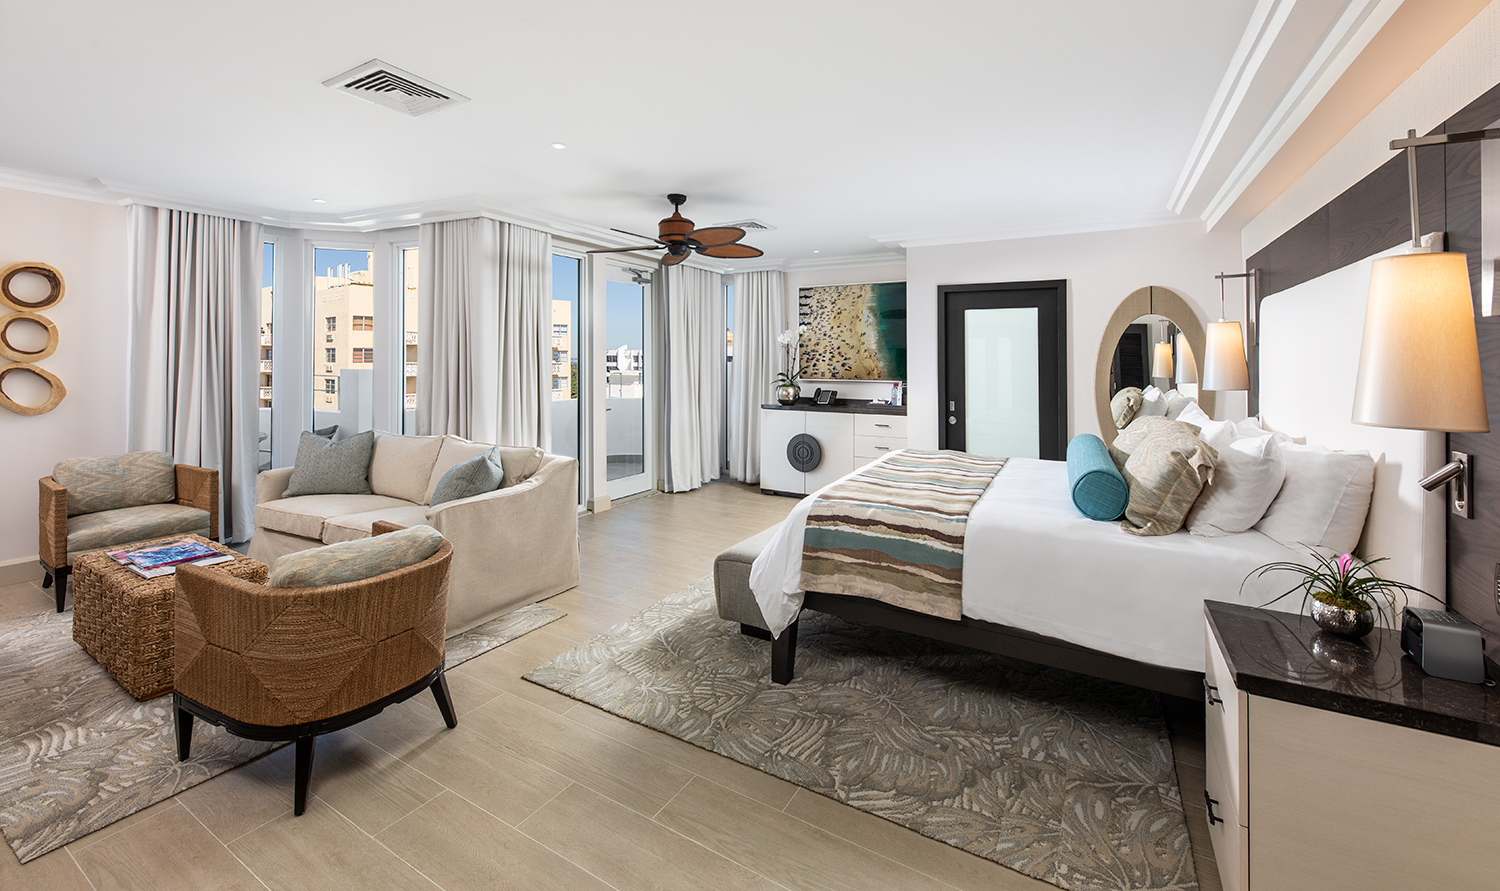 The-Palms-Hotel-March-2019-room-1201-01B